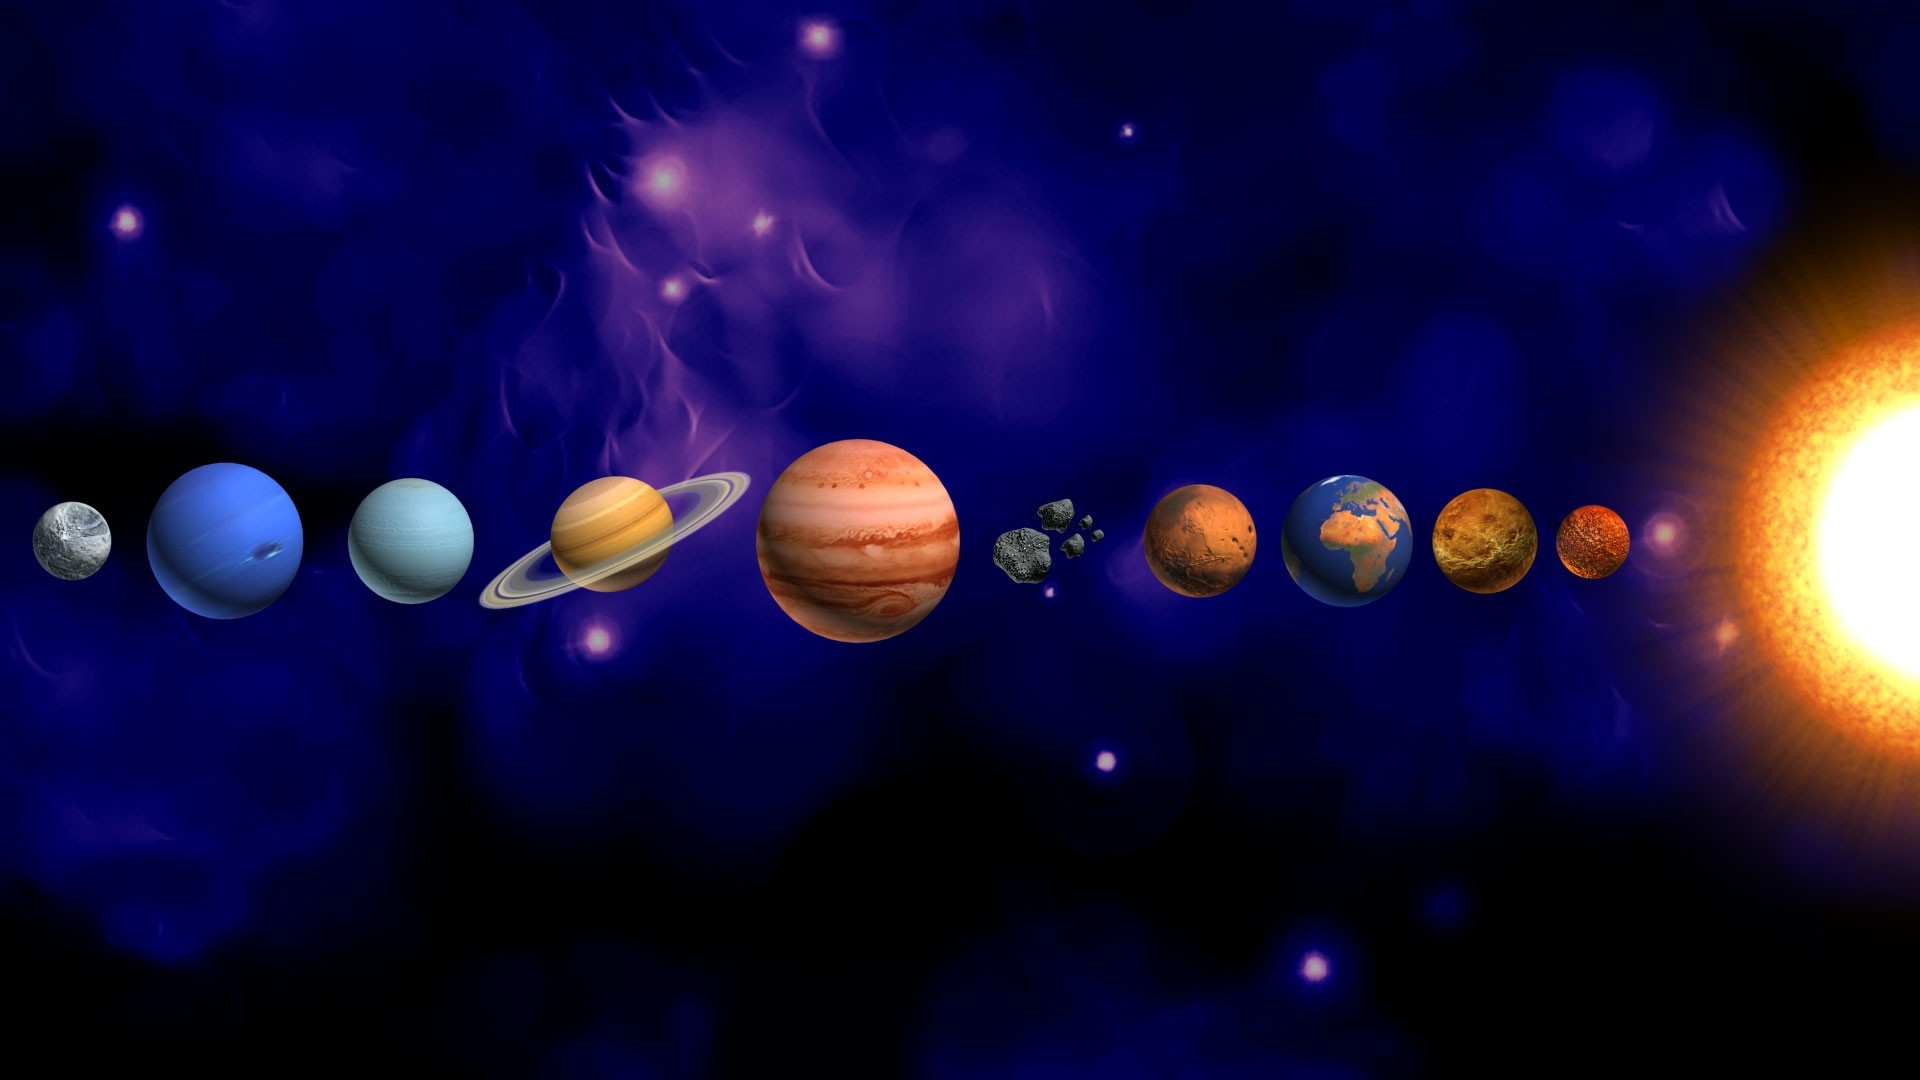 Solar System Wallpaper and Background